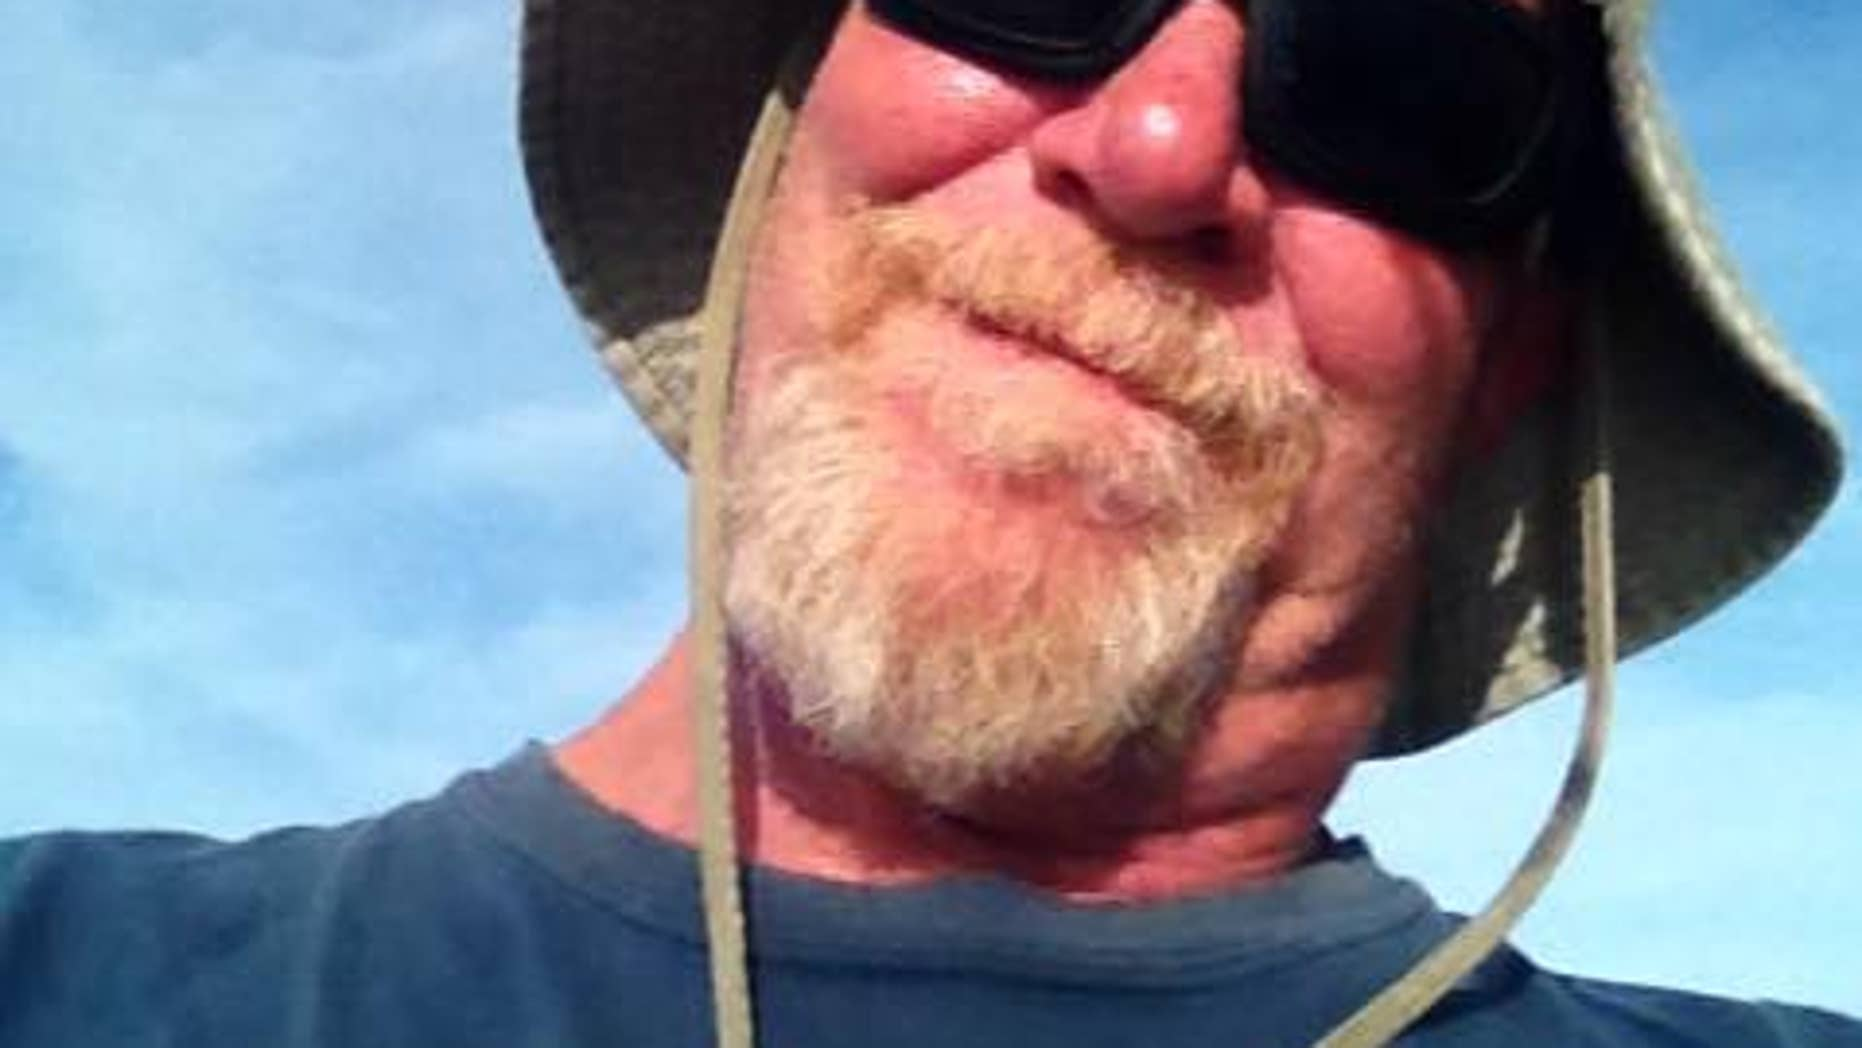 The remains of Thomas Cook, 62, of South Burlington, Vermont were found in a shallow grave in Costa Rica weeks after he was reported missing.